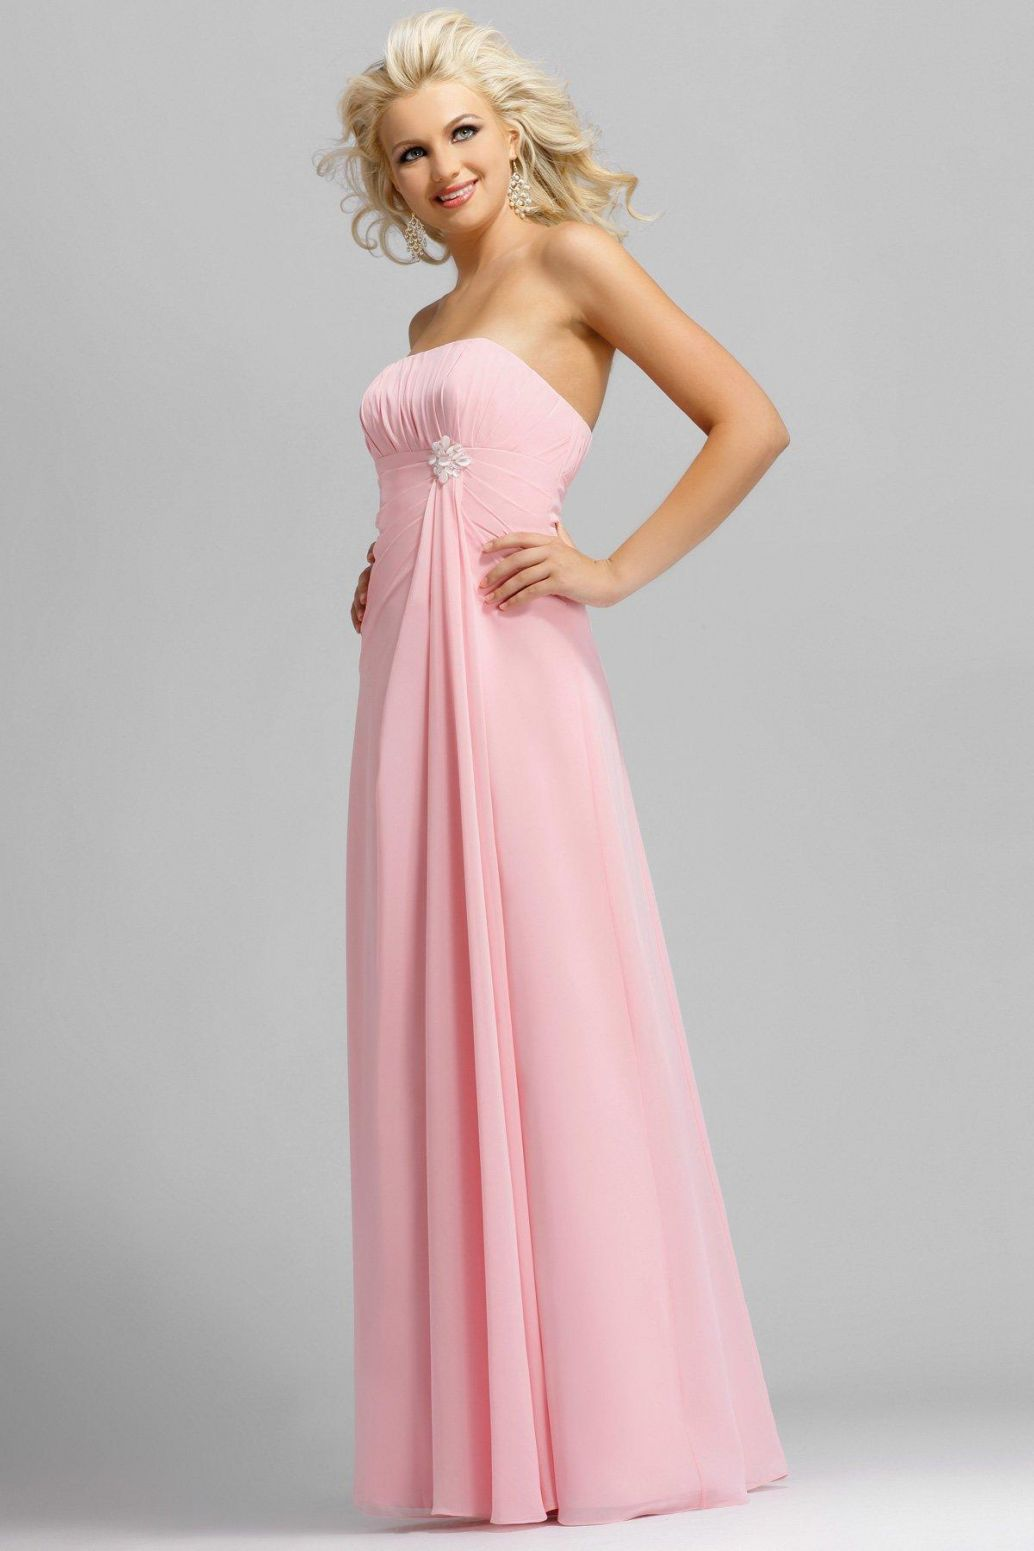 Long Bright Pink Bridesmaid Dress Designs - Wedding Dress